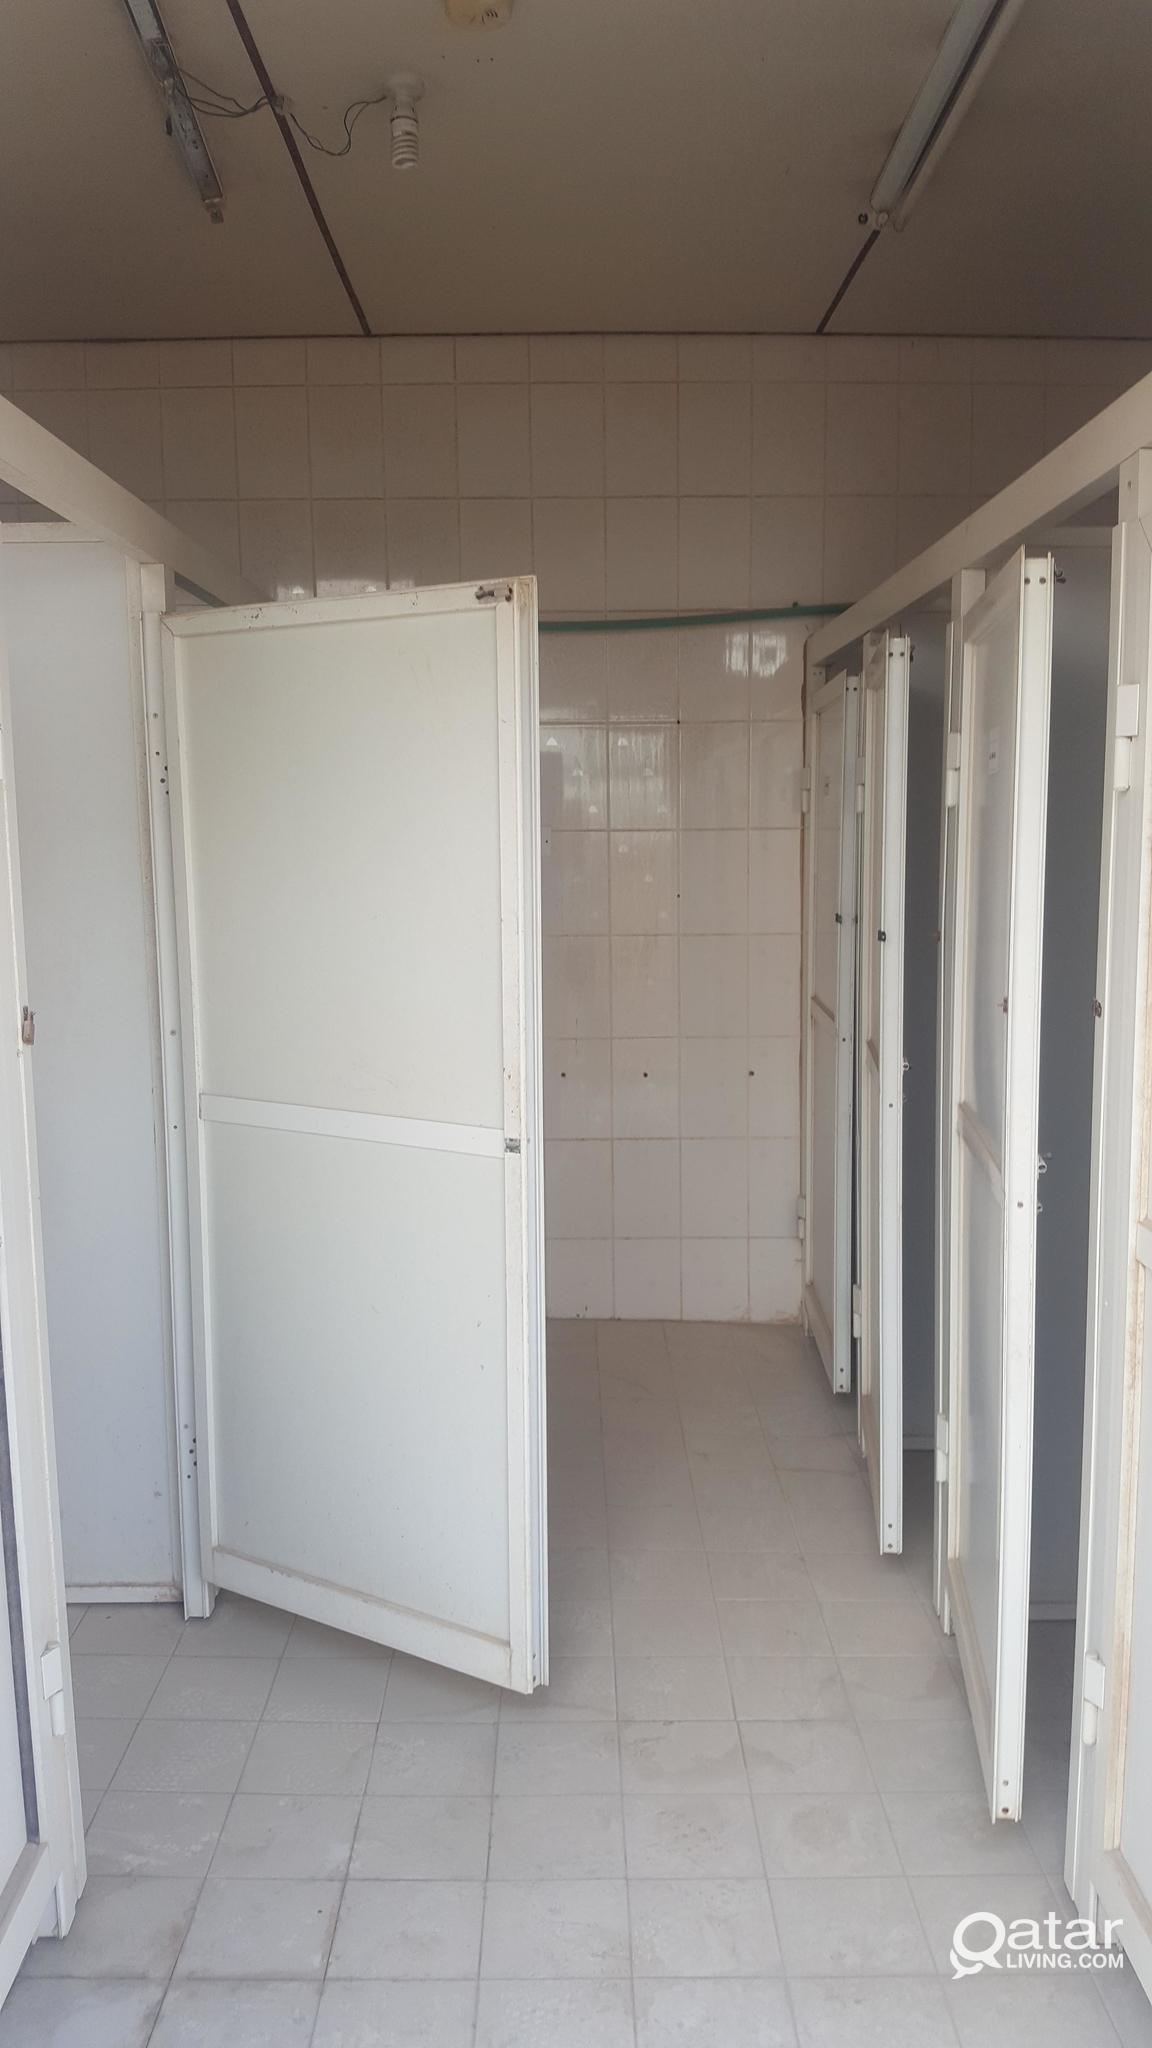 Labour camp fully furnished ALKHOR 22rooms,18rooms